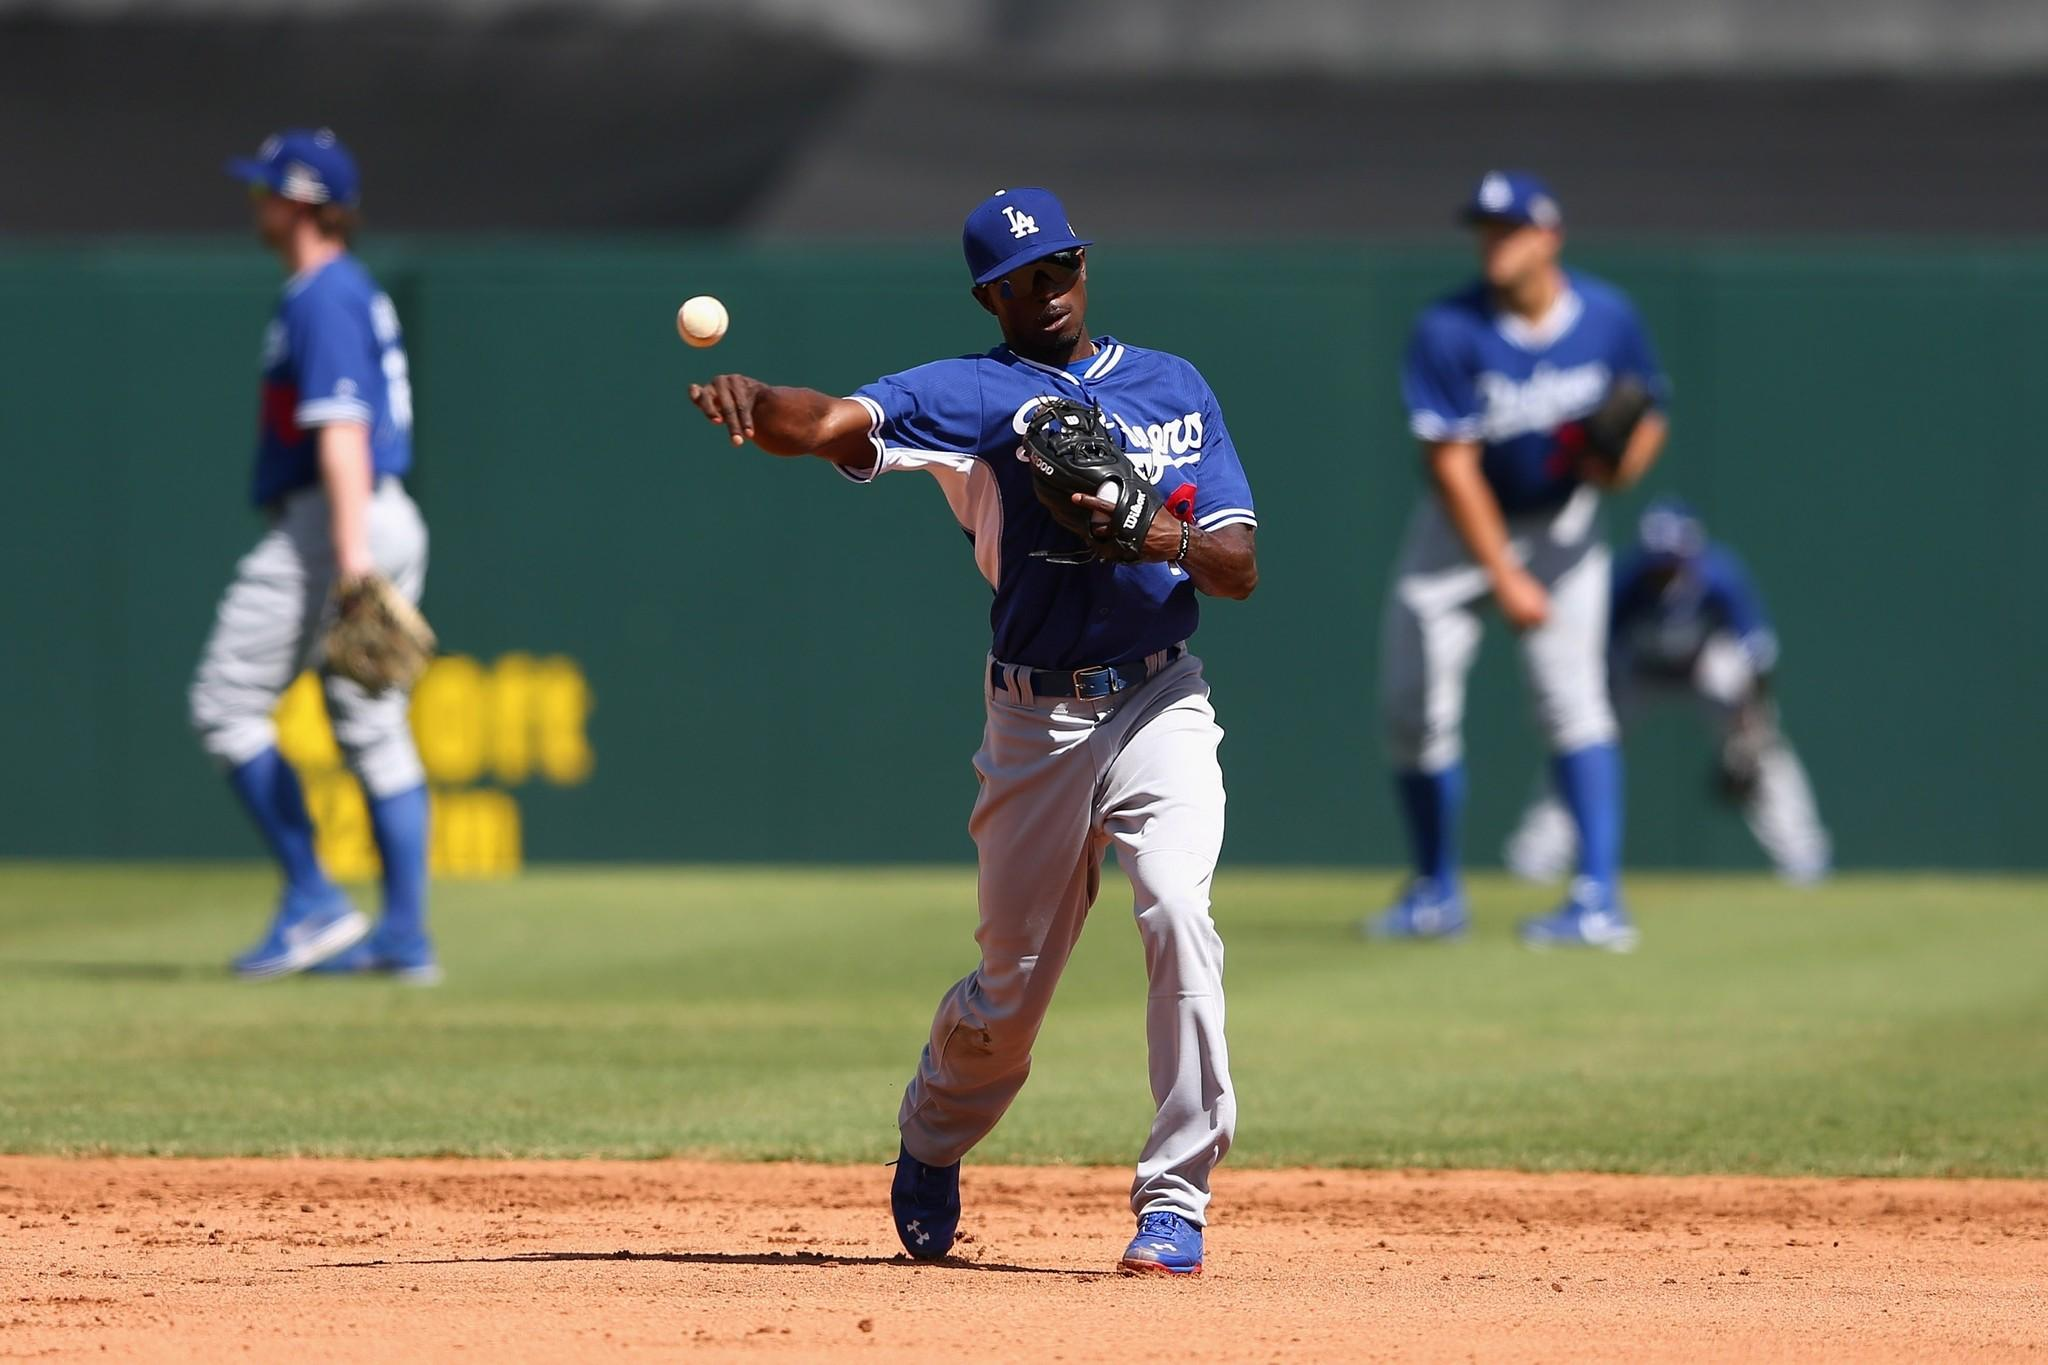 Dee Gordon is set to start the Dodgers' regular season platooning at second base with Justin Turner.